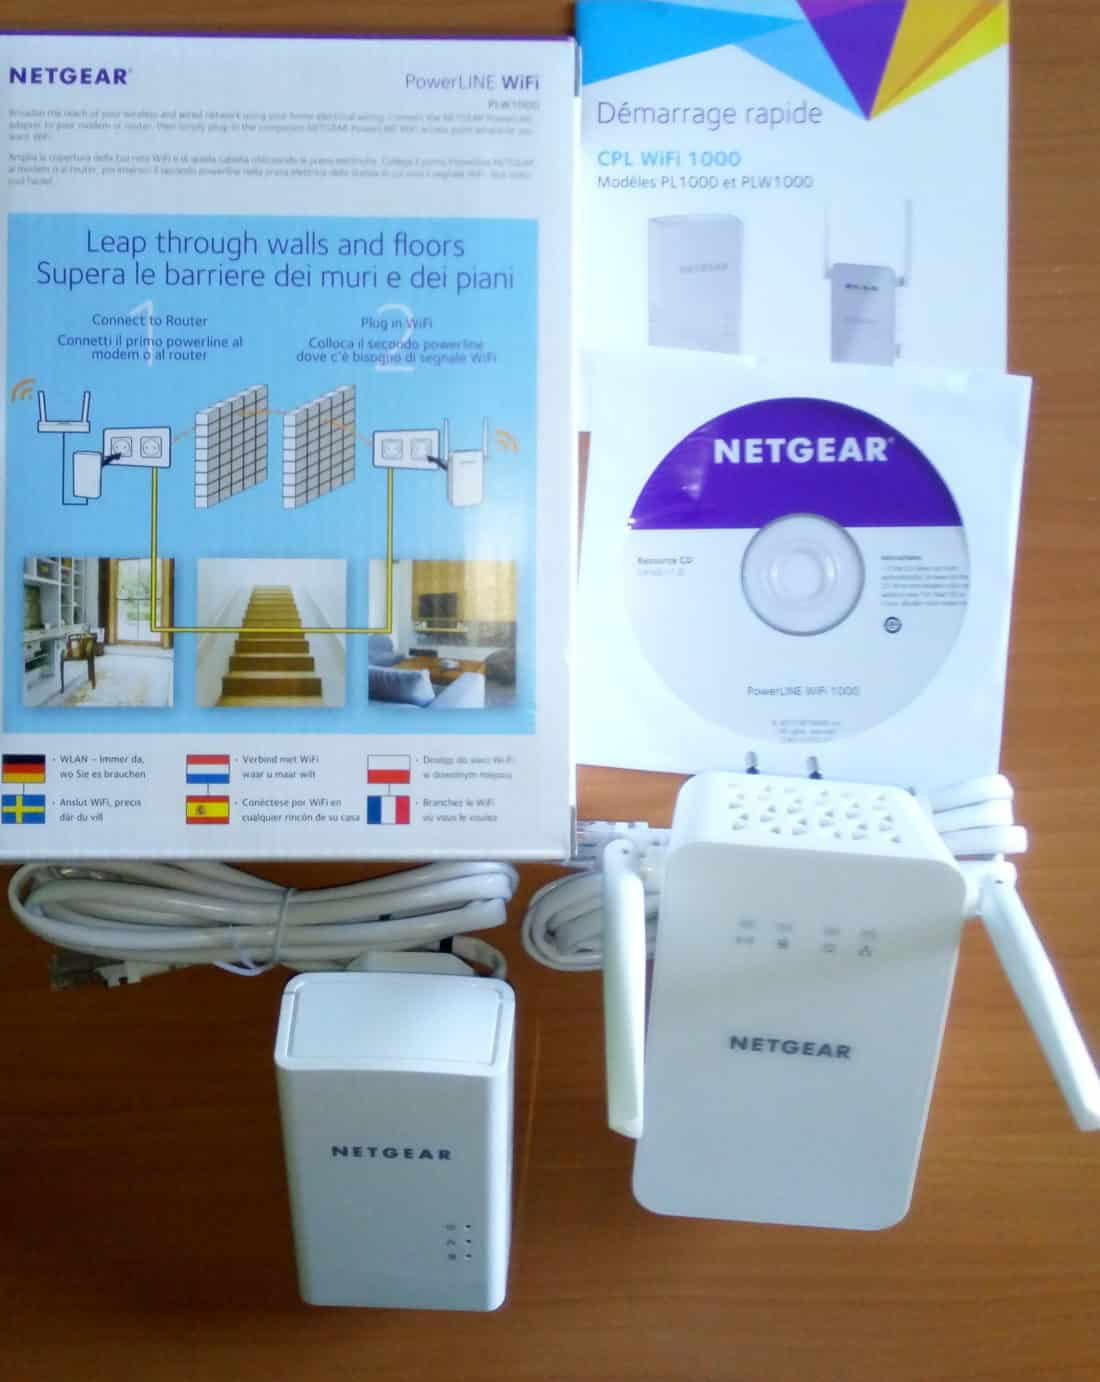 test kit cpl plw 1000 netgear gigabit page 3 sur 3. Black Bedroom Furniture Sets. Home Design Ideas